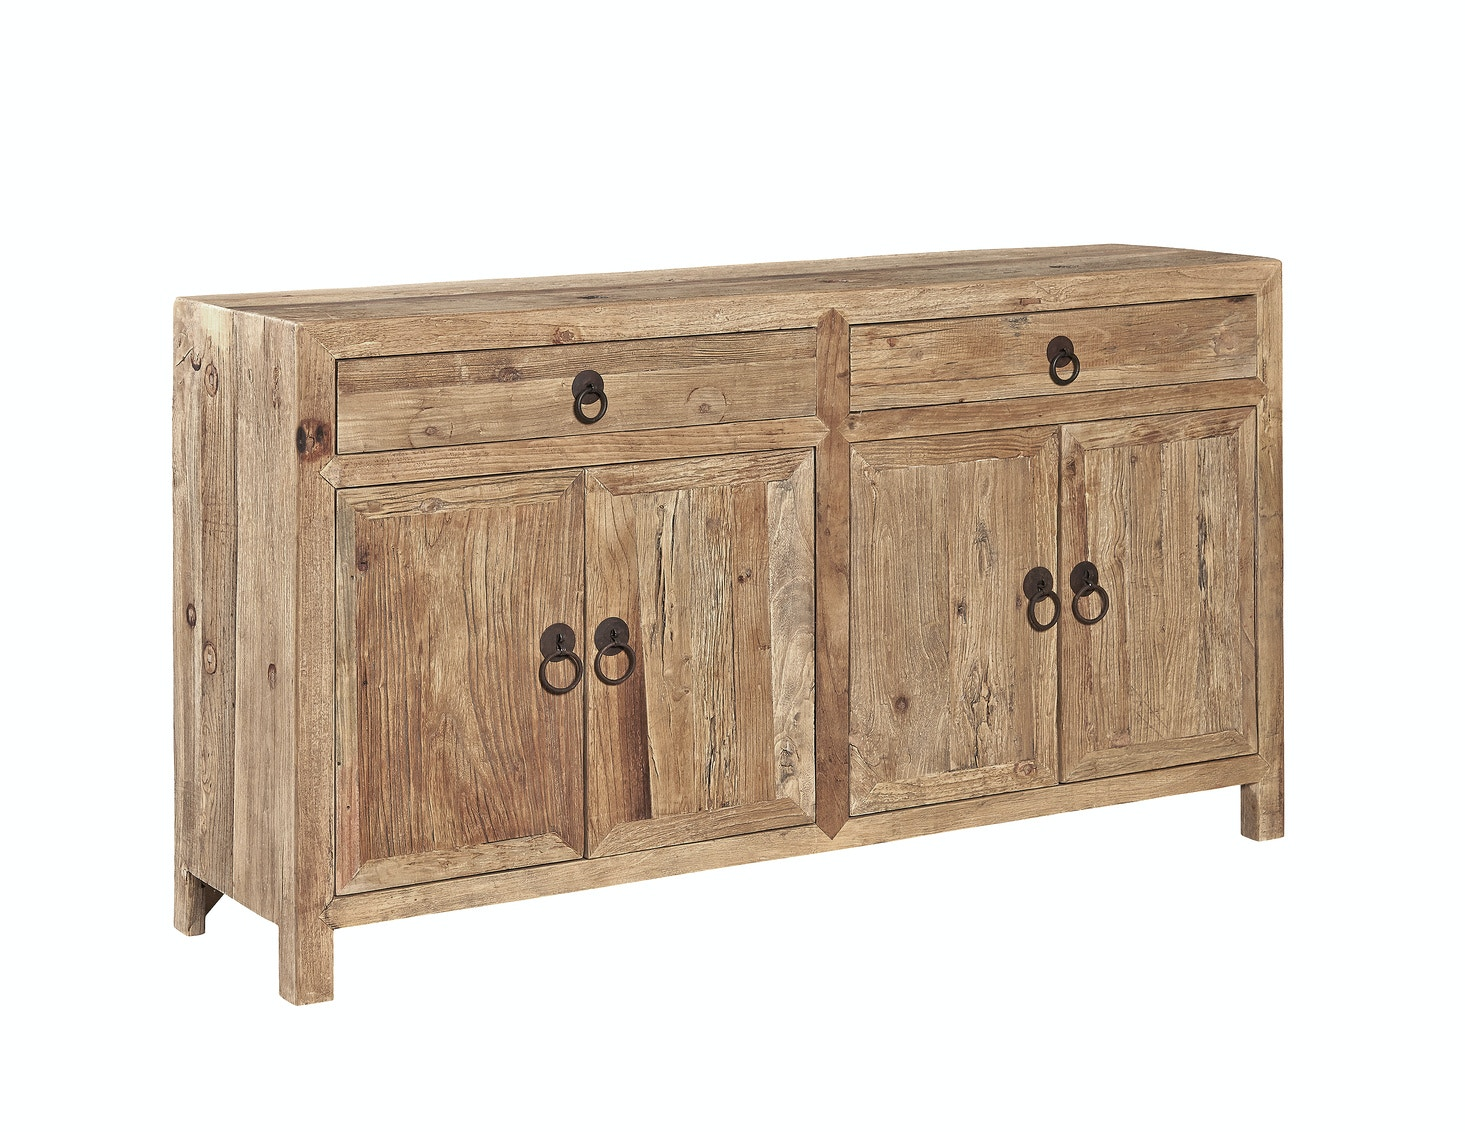 Attirant Furniture Classics Old Elm Sideboard 71061